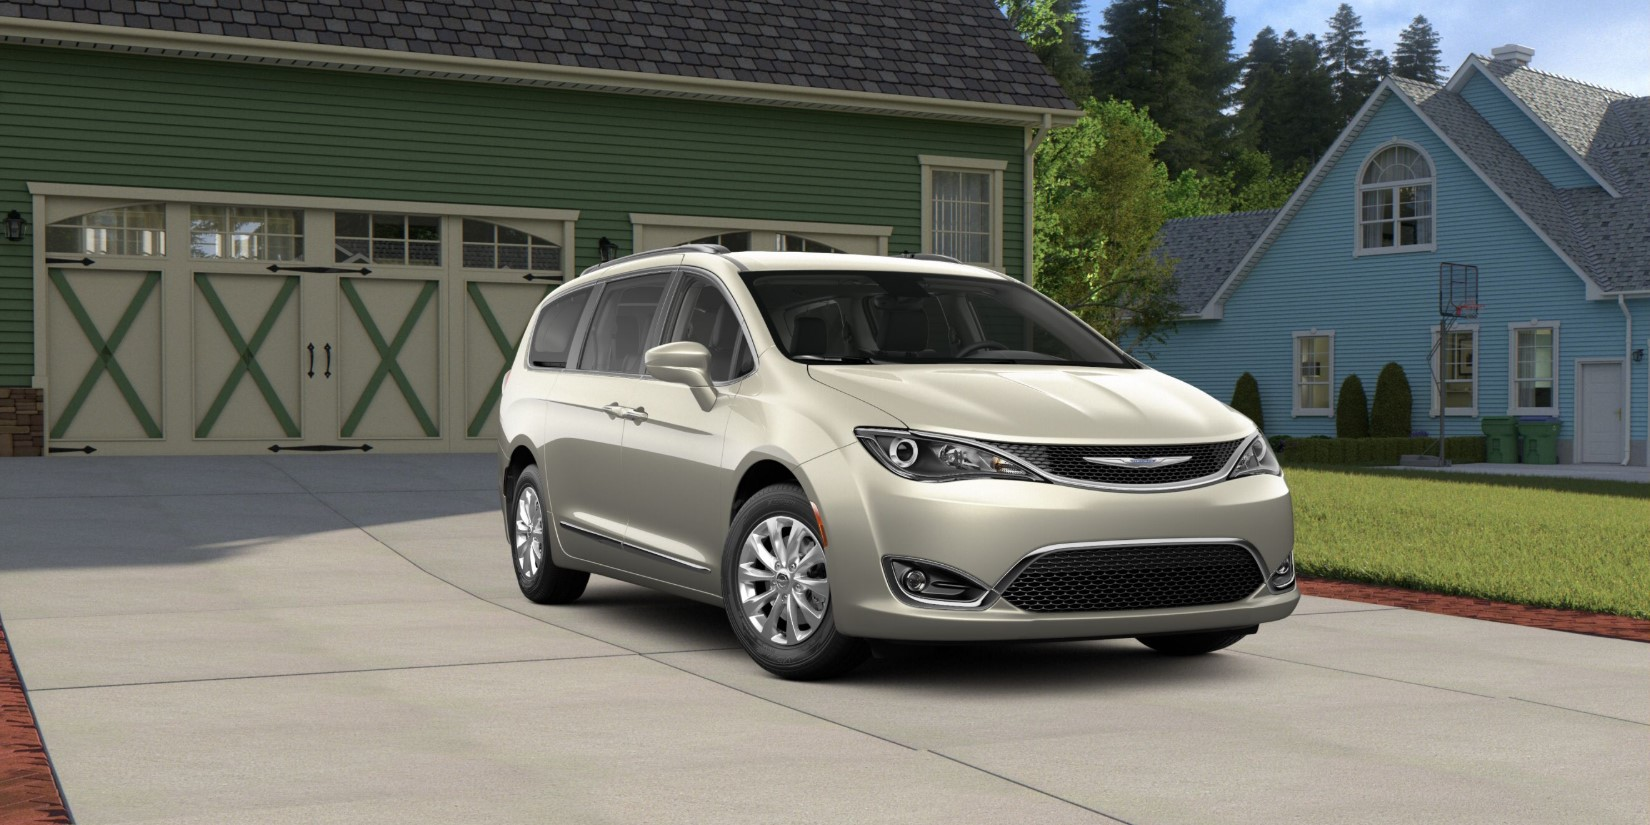 2019 Chrysler Pacifica Touring L White Pearl Exterior Front Picture